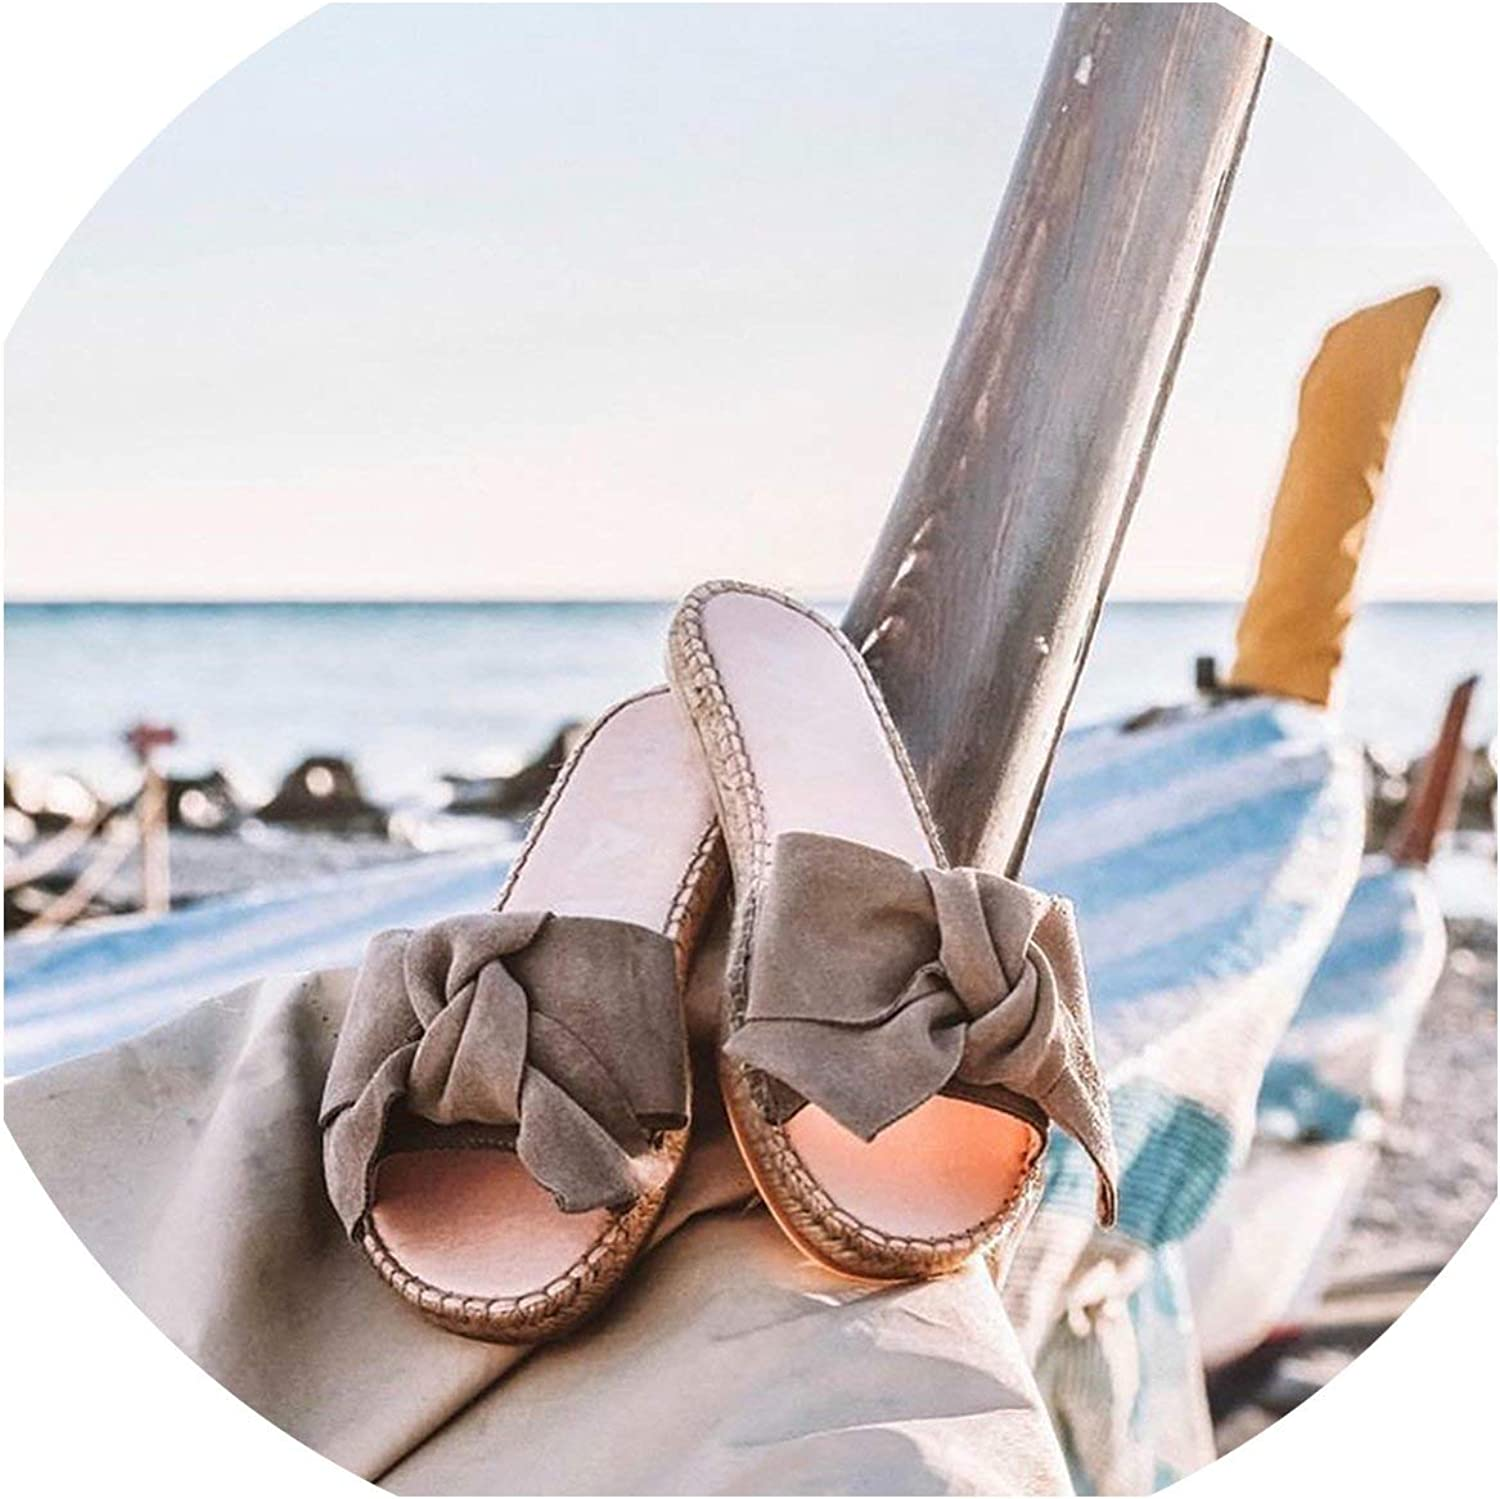 2019 Women Summer New Slippers Bow Summer Sandals Slipper Indoor Outdoor Flip-Flops Beach shoes Female Fashion shoes